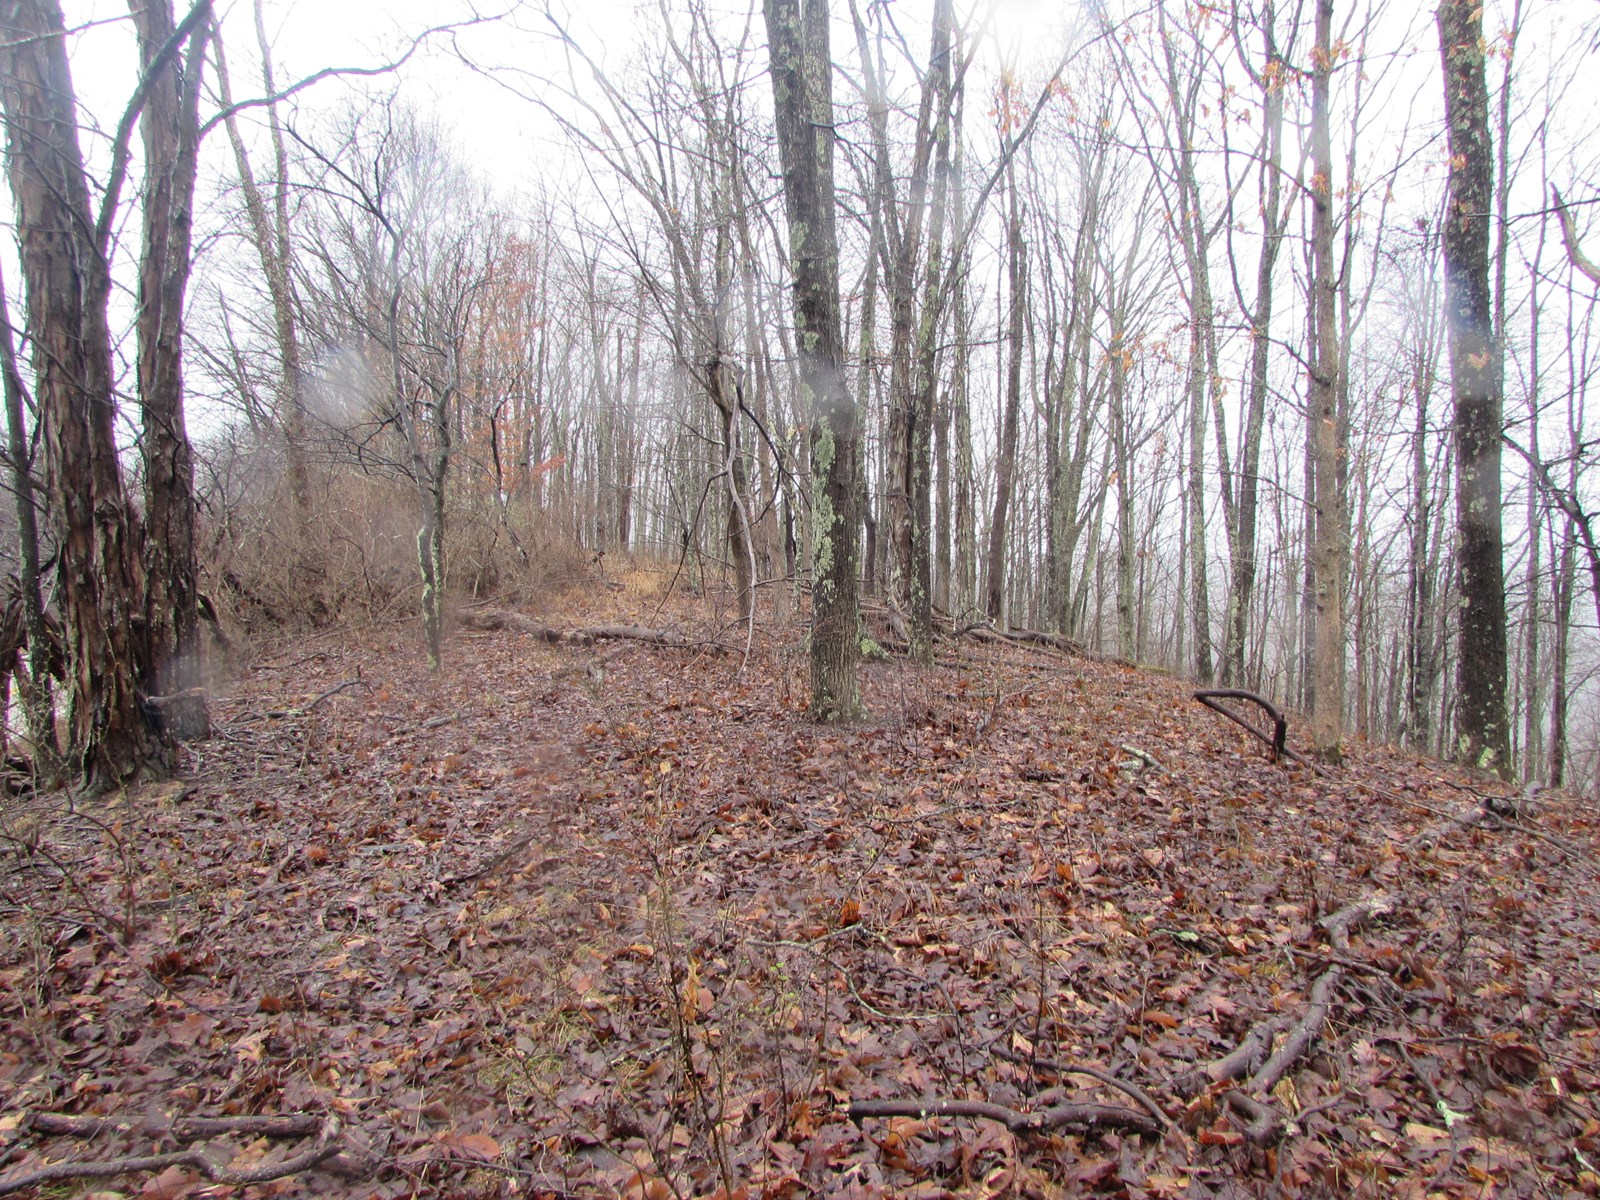 23.65 ACRES OF HUNTING LAND IN GILMER CO. WV